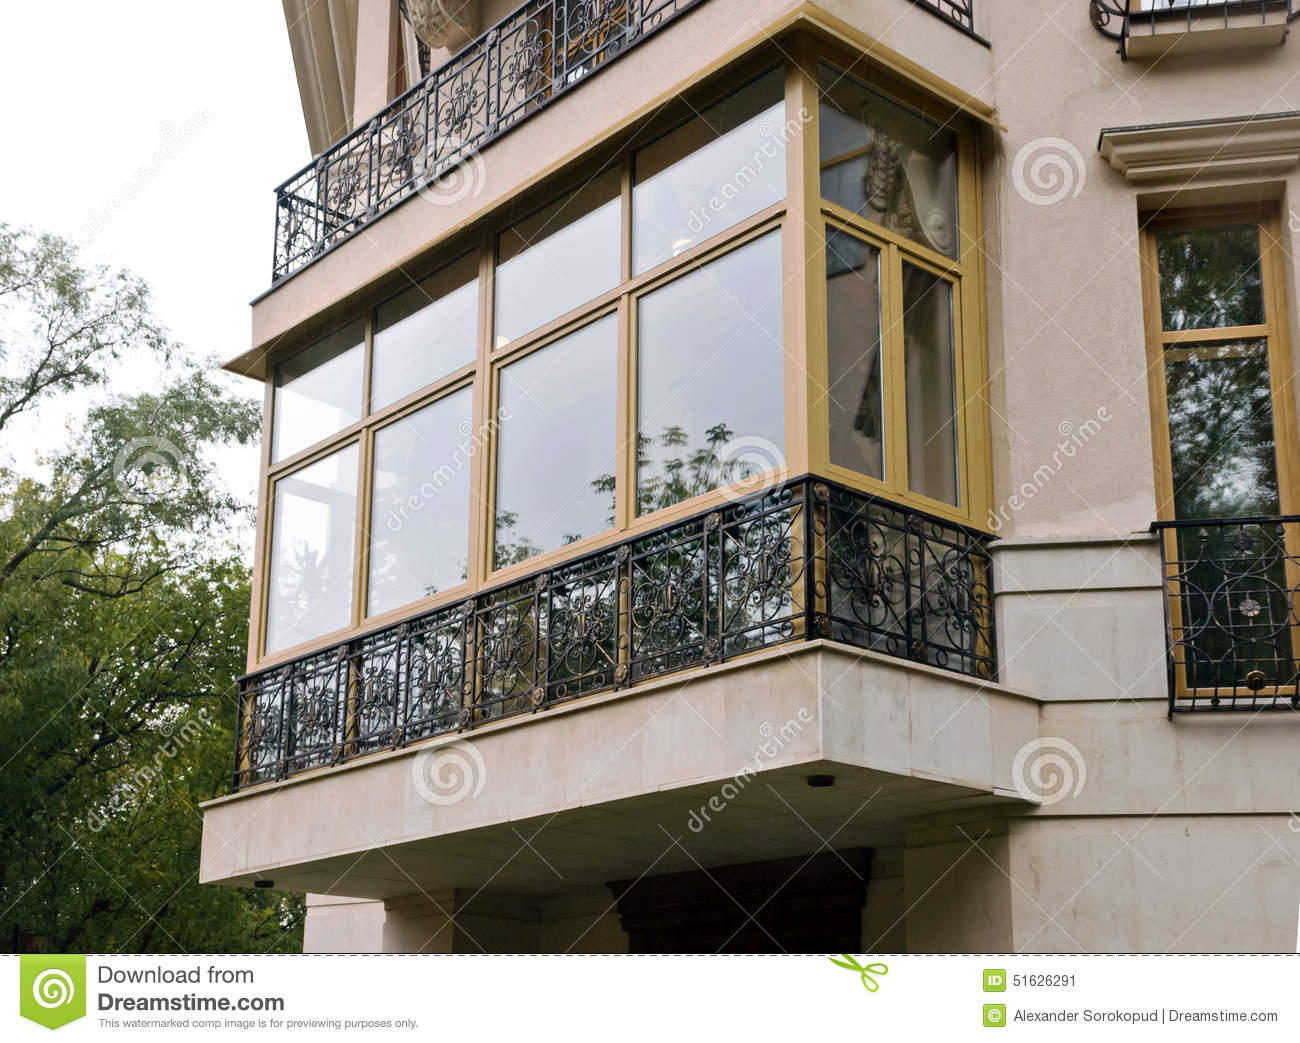 Where to order balcony glazing in Moscow 8